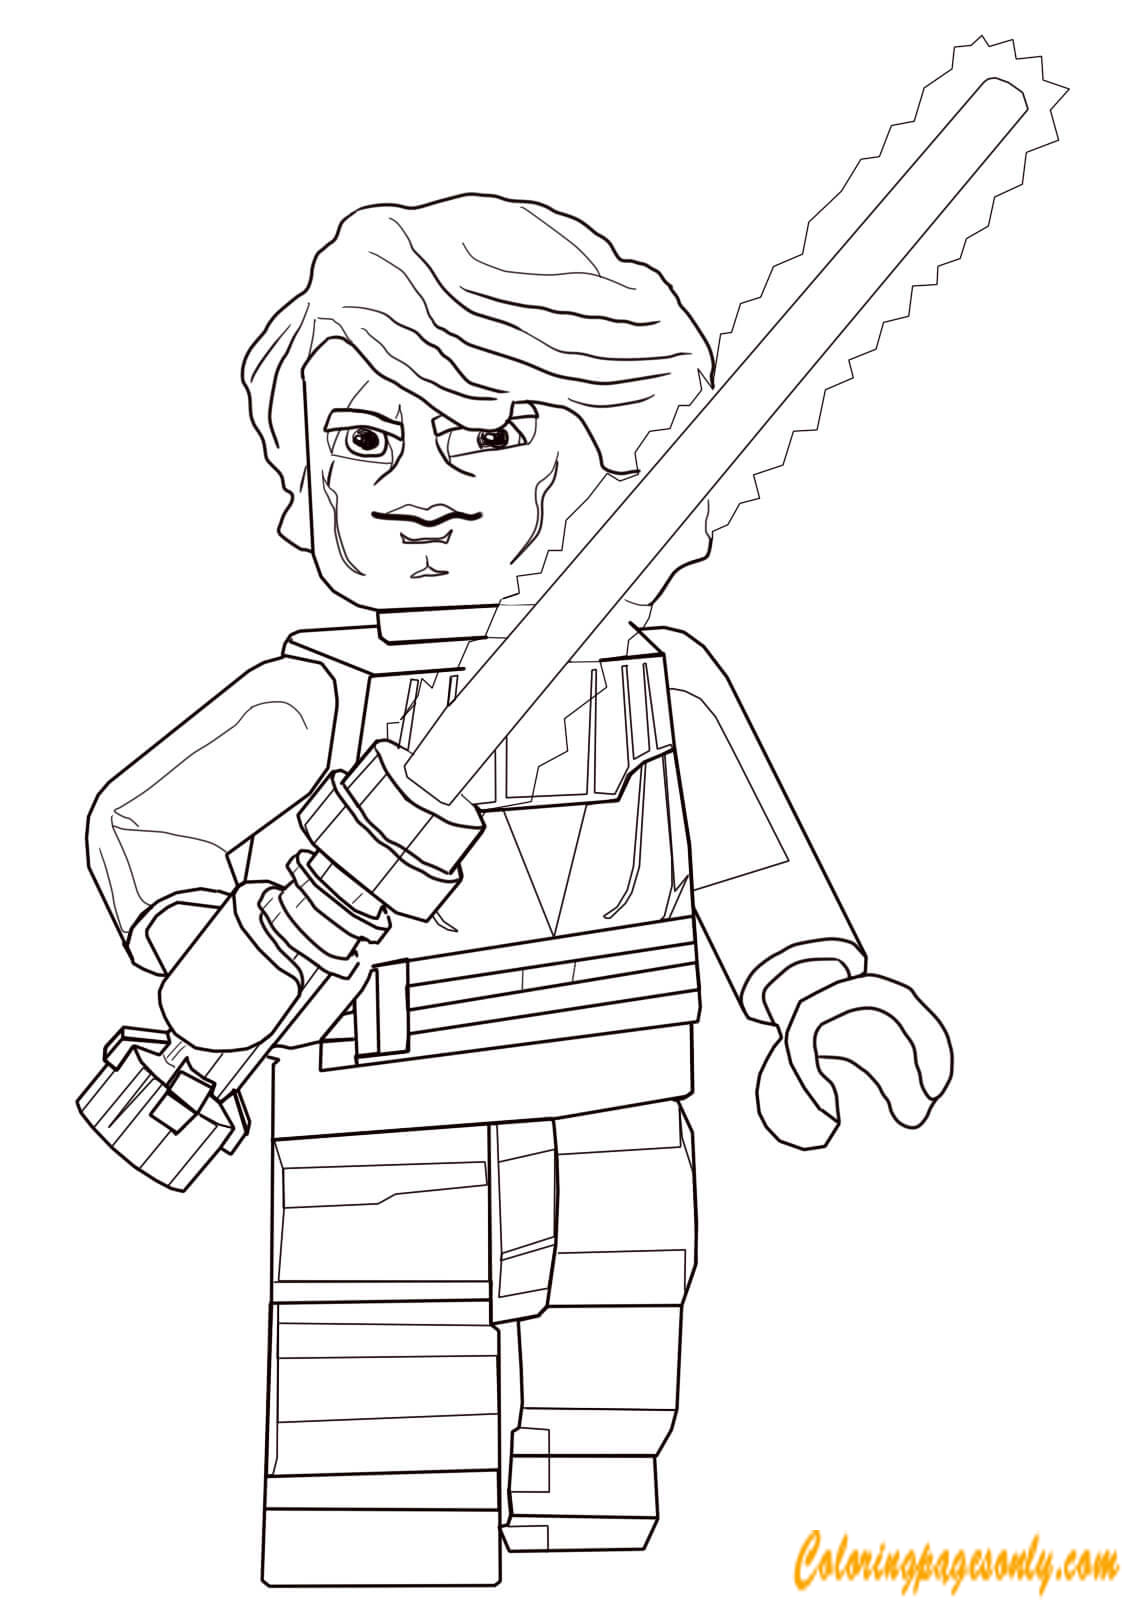 Anakin Skywalker from Lego Star Wars Coloring Page - Free ...